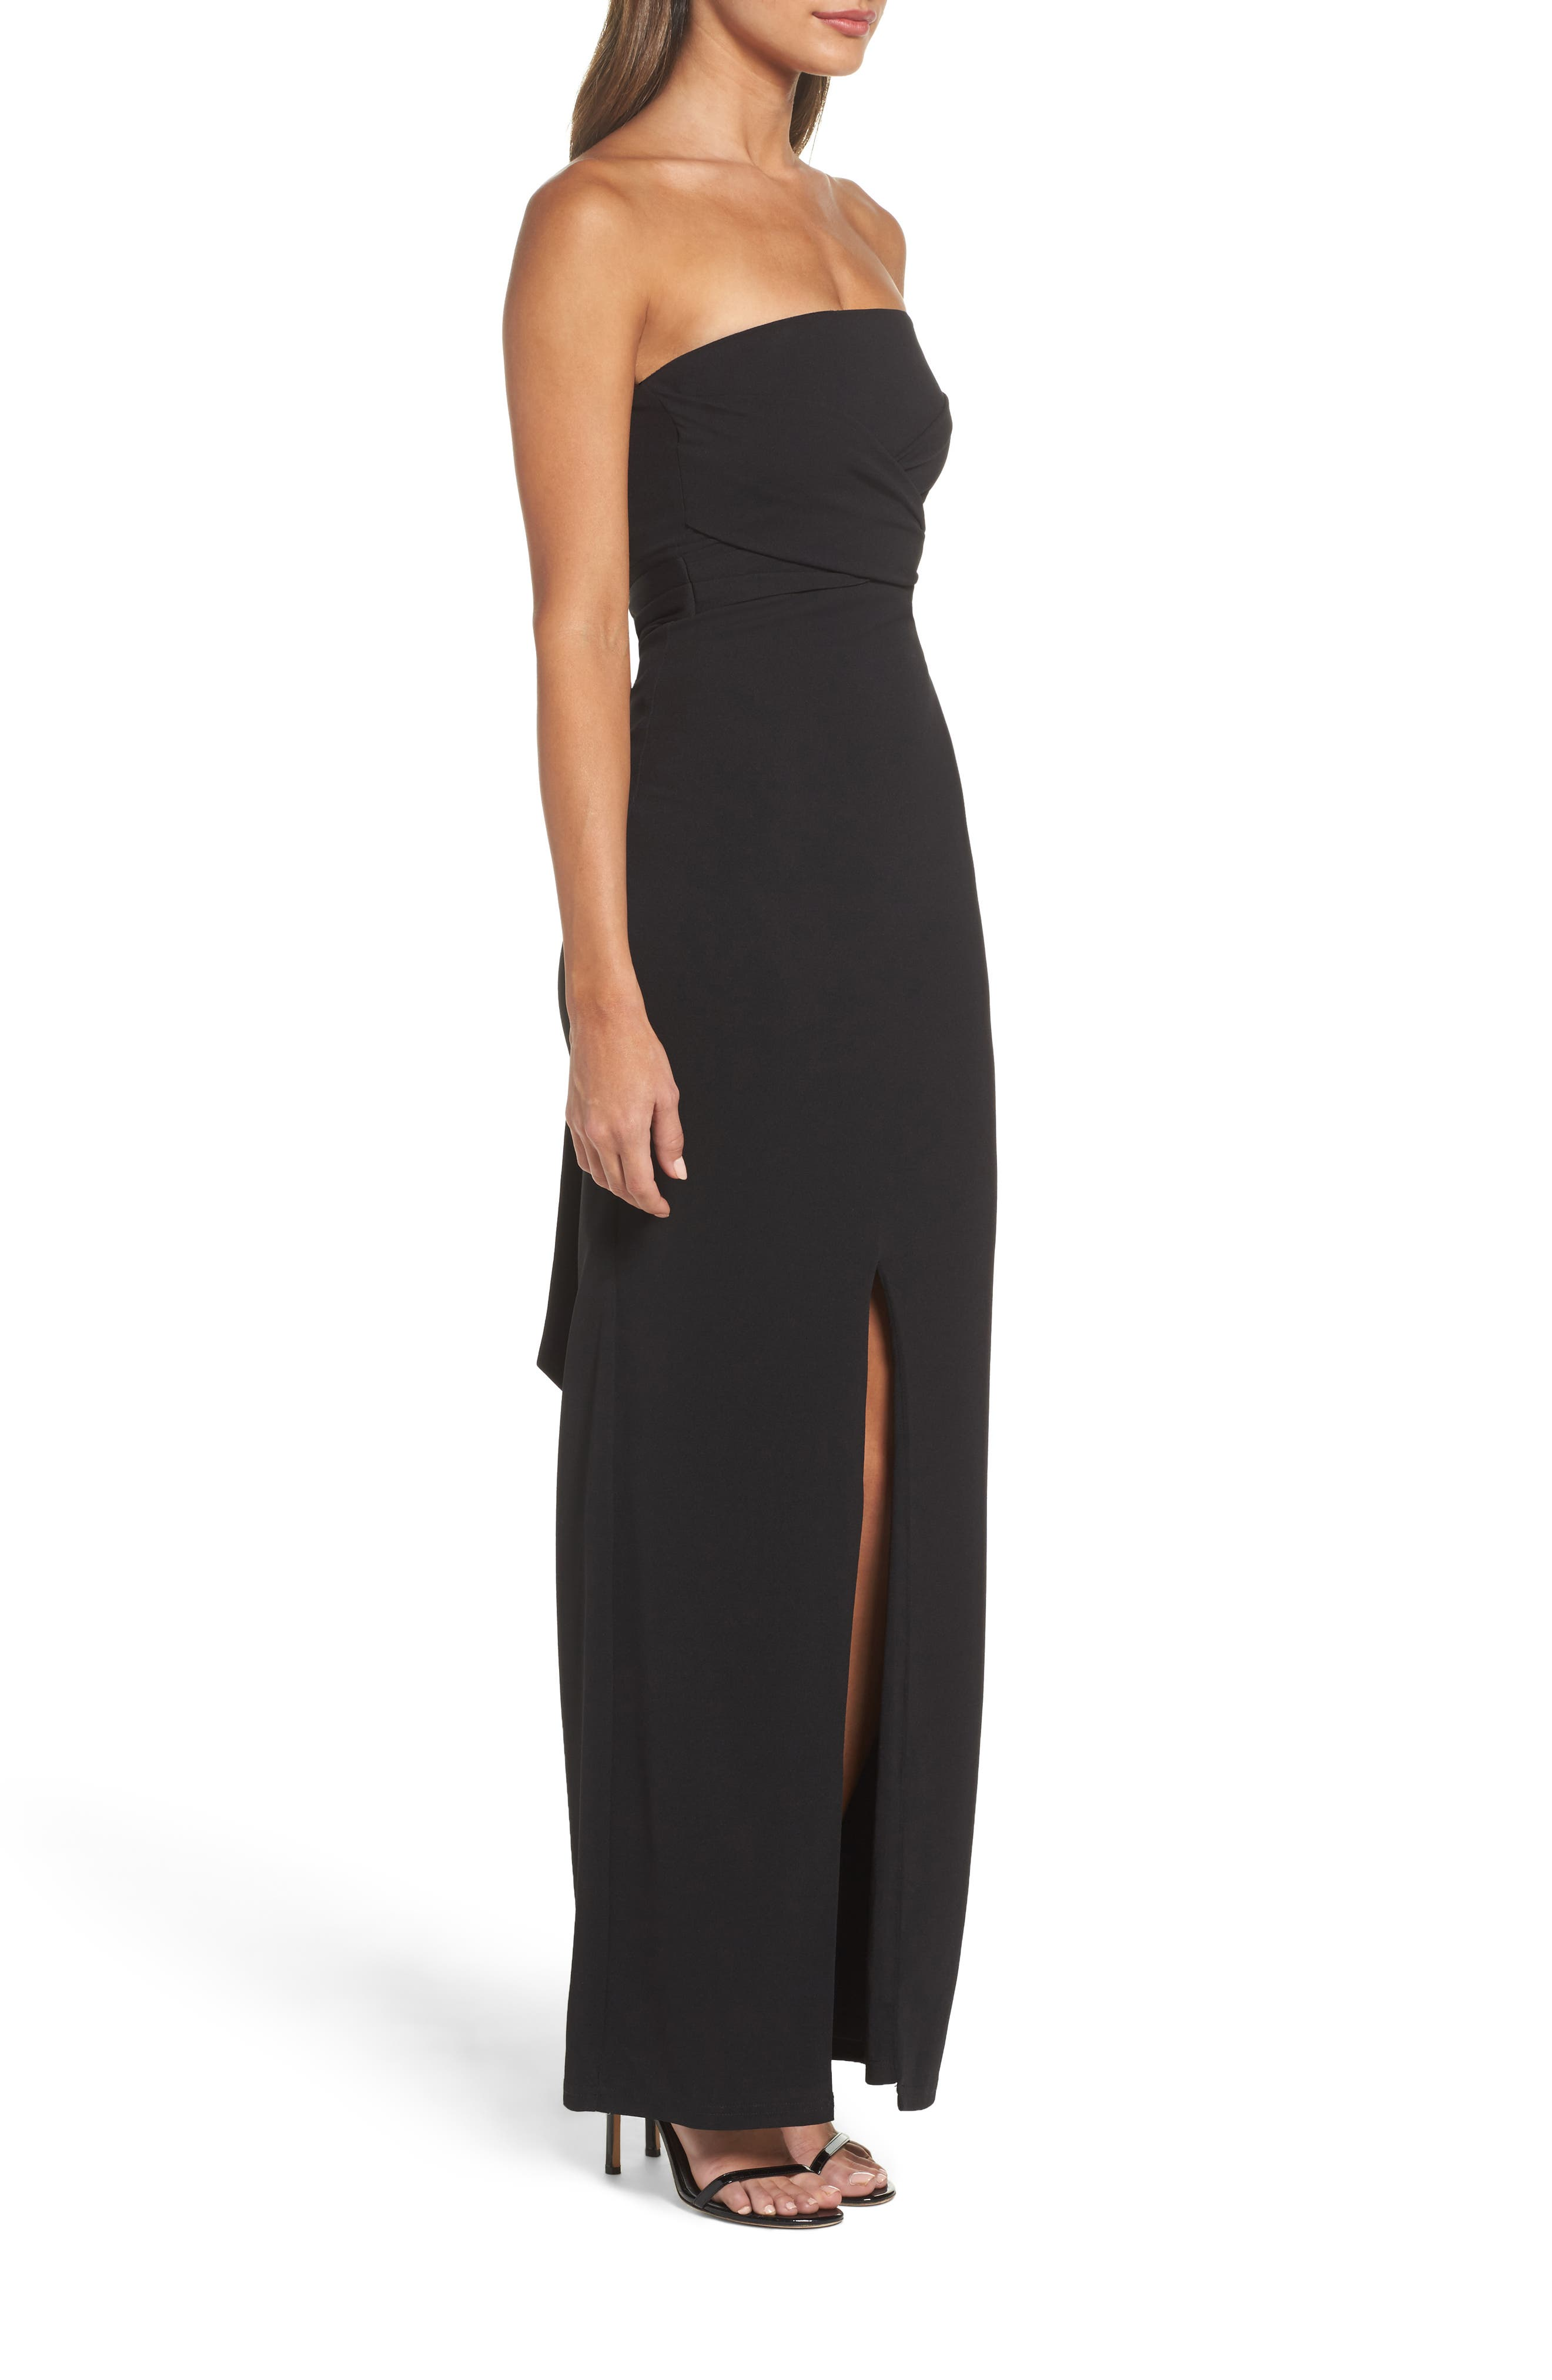 LULUS,                             Own the Night Strapless Maxi Dress,                             Alternate thumbnail 3, color,                             BLACK